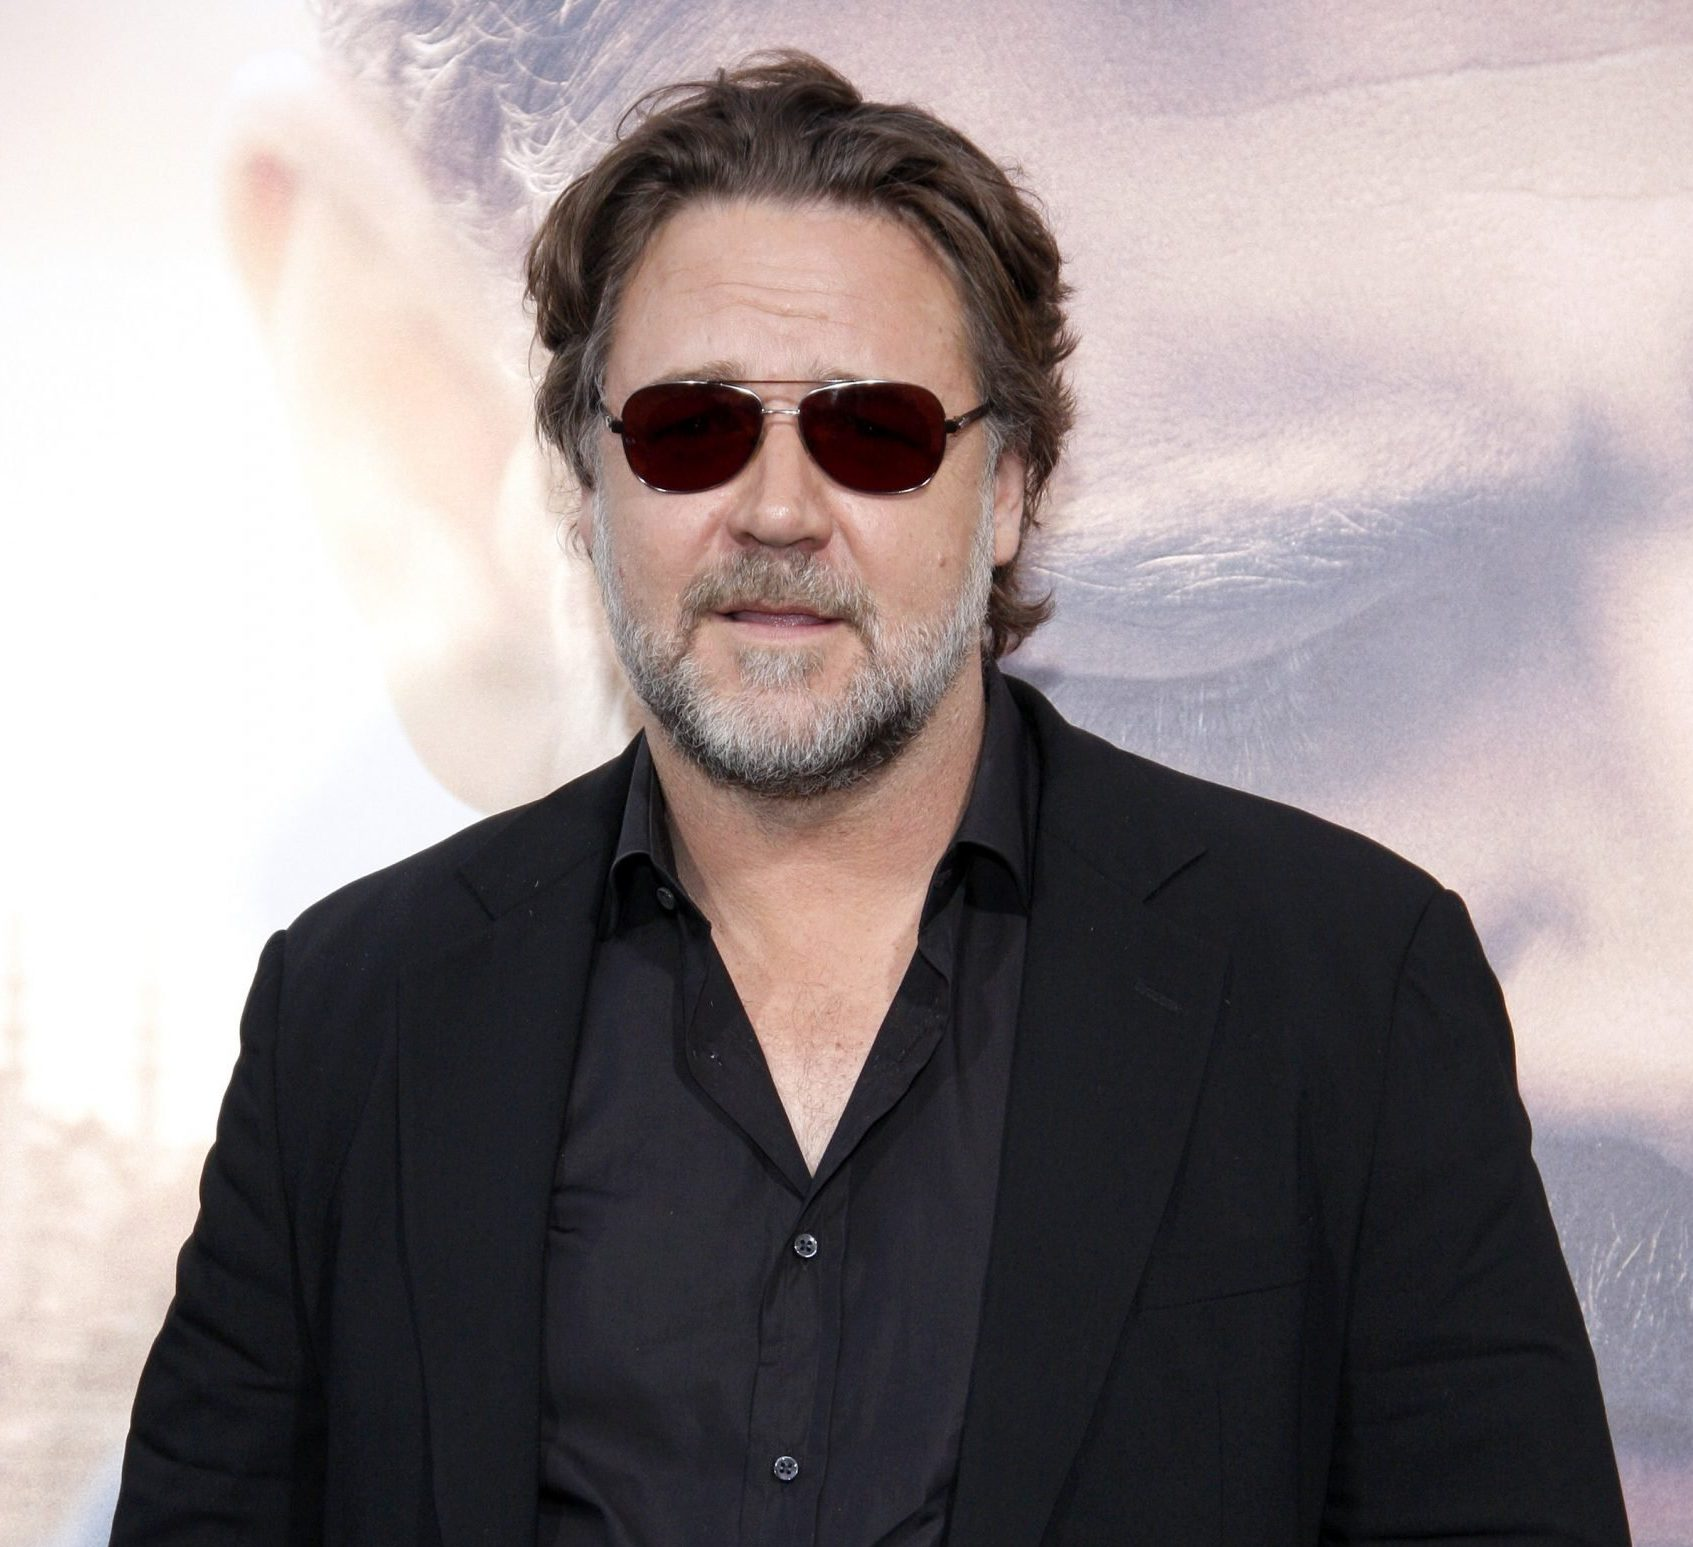 Russell Crowe attends a red carpet event wearing a black jacket, shirt and dark sunglasses.